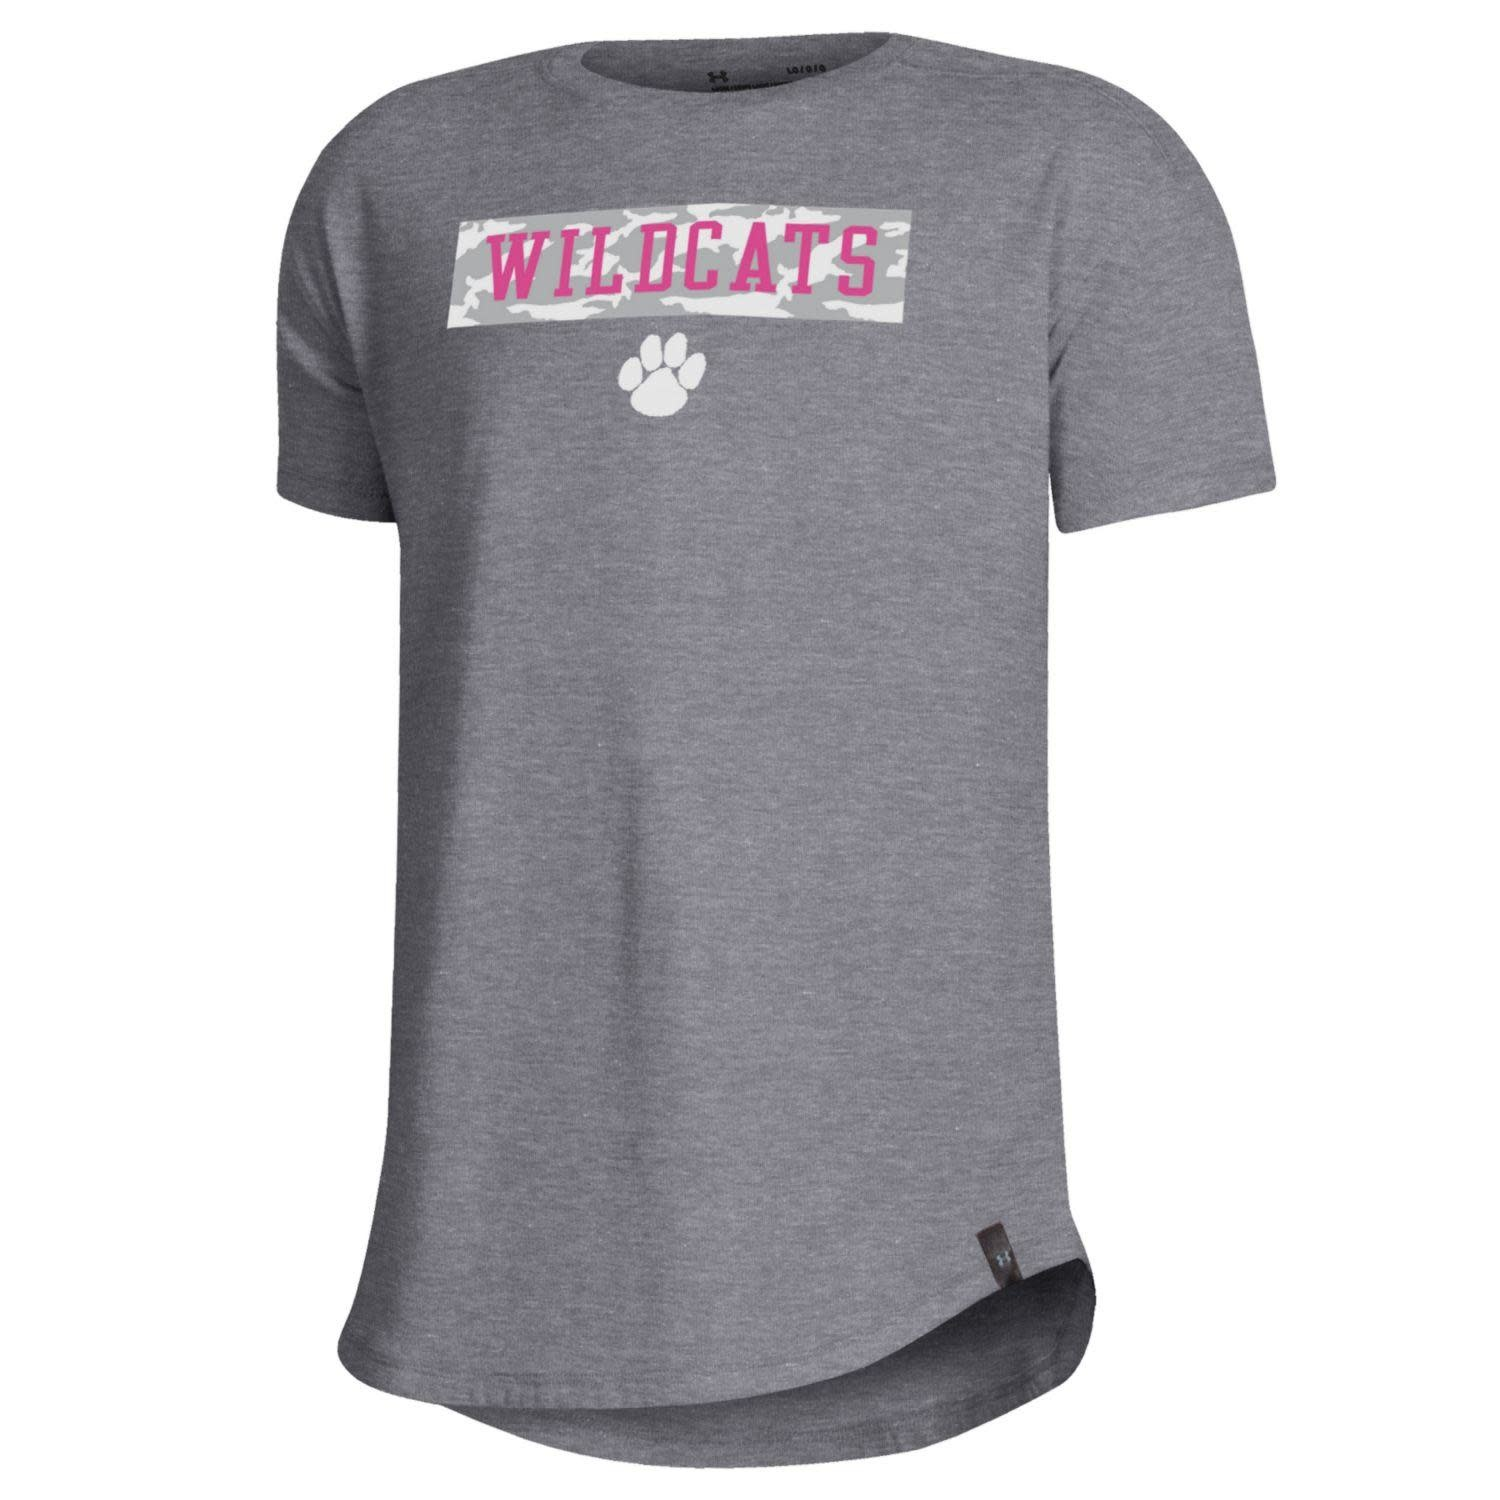 Under Armour T: UA Wildcats with Camo Above Paw Logo